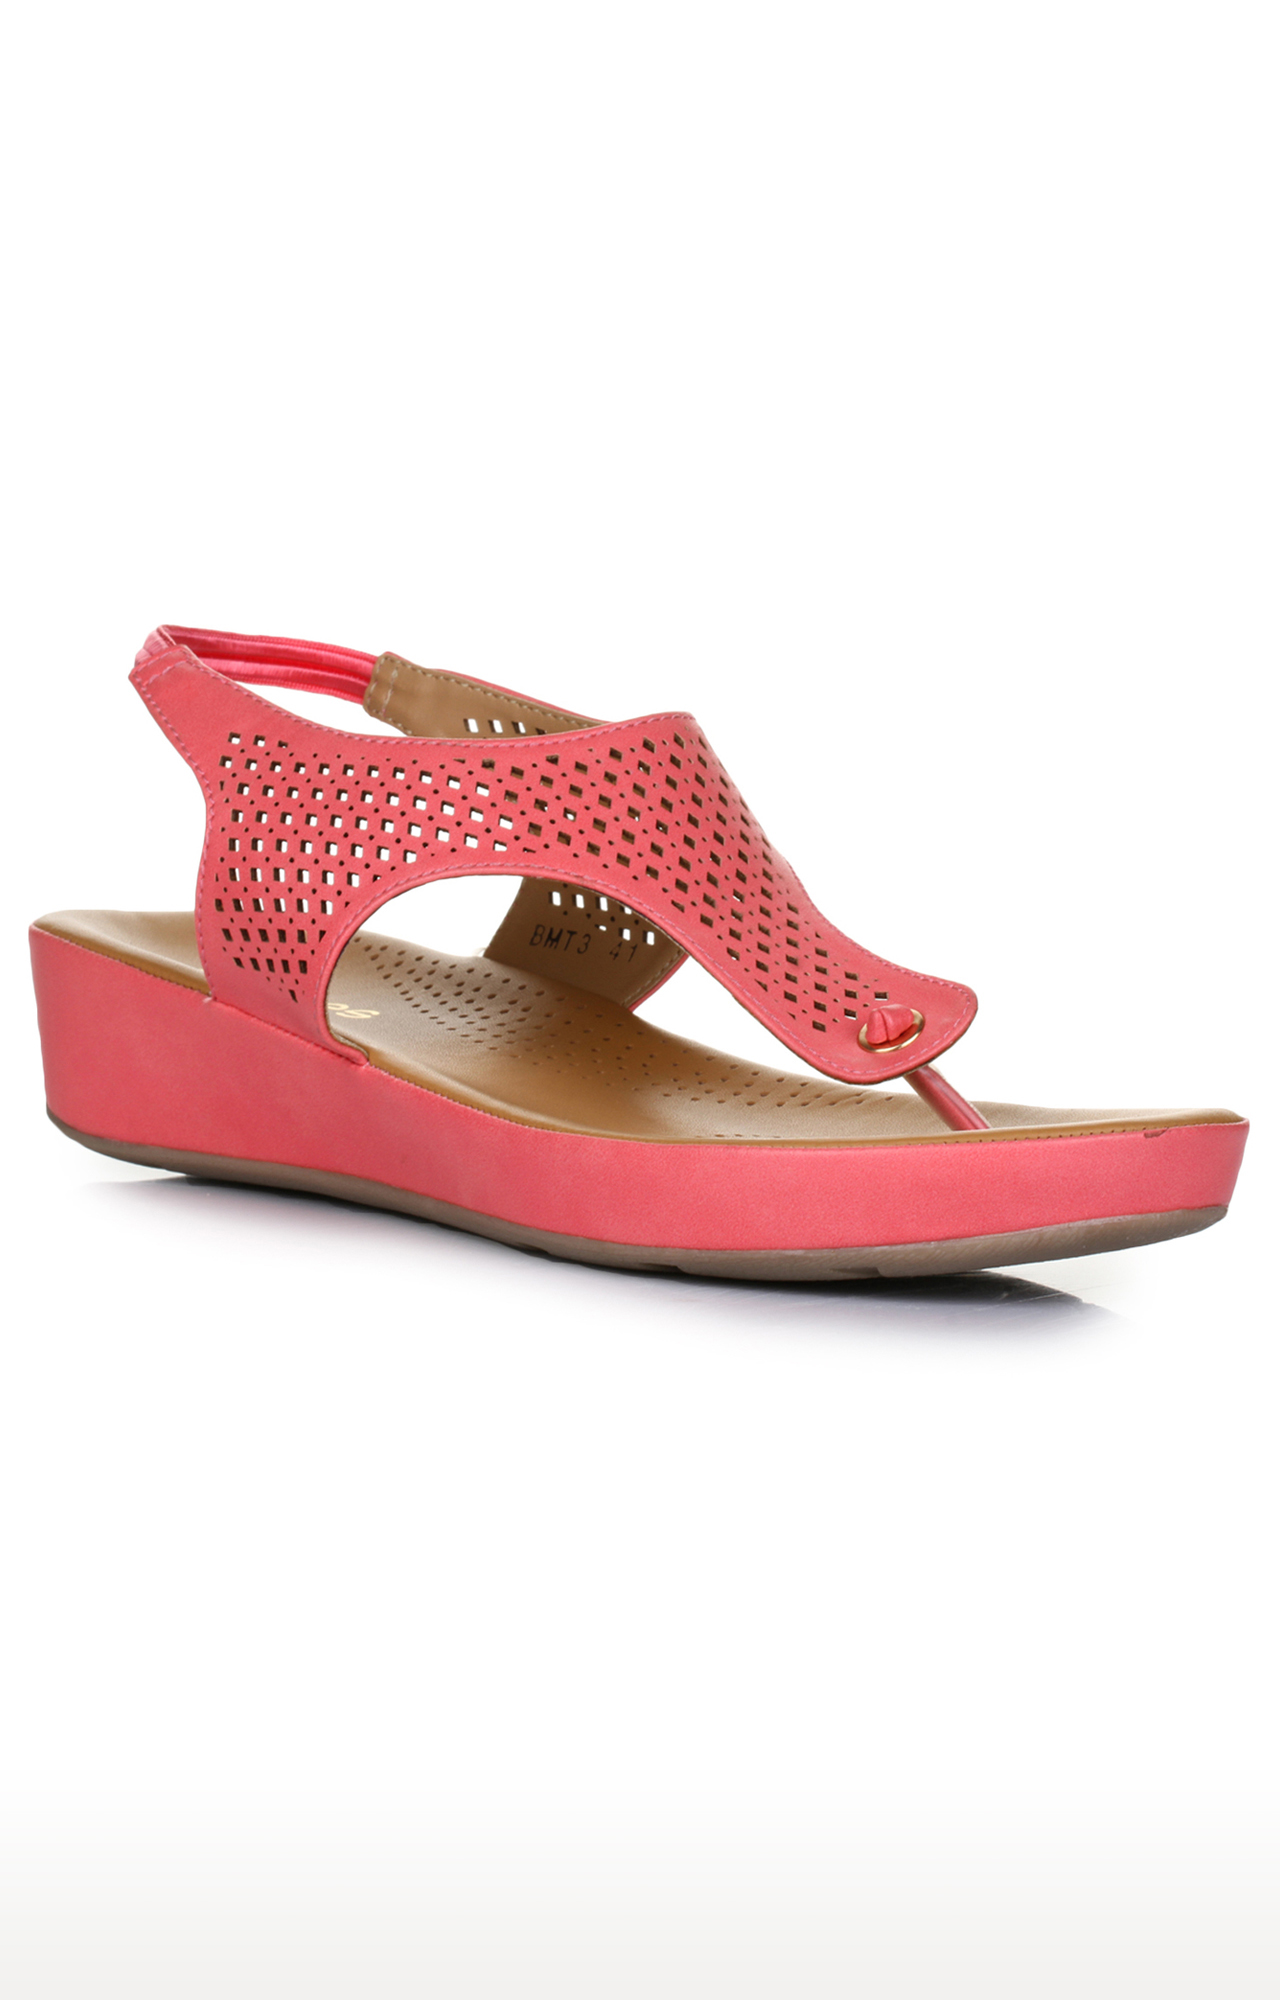 Liberty | Healers by Liberty Pink Sandals